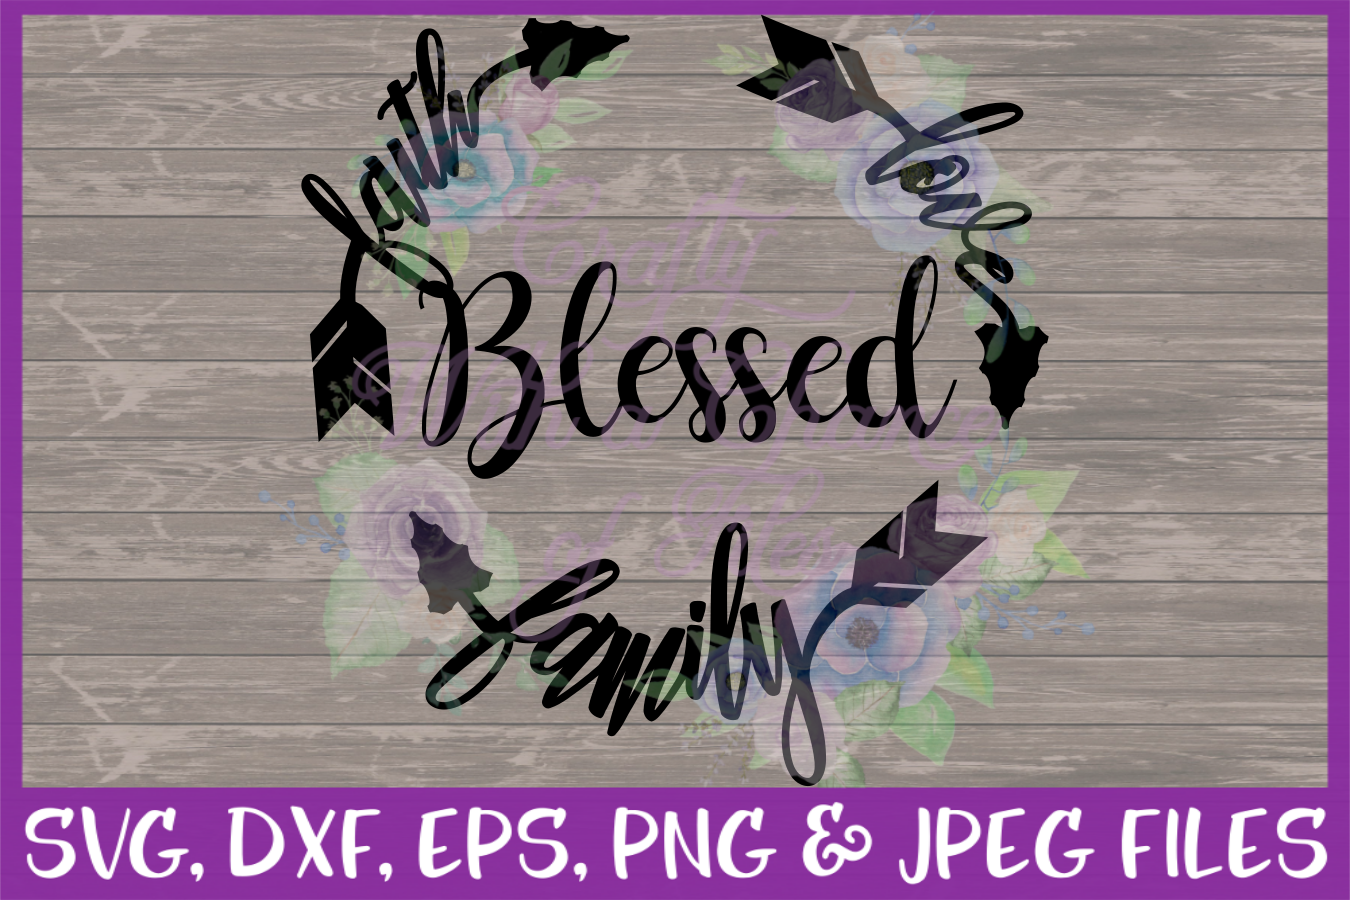 Blessed Faith Love Family SVG - Family Design example image 1